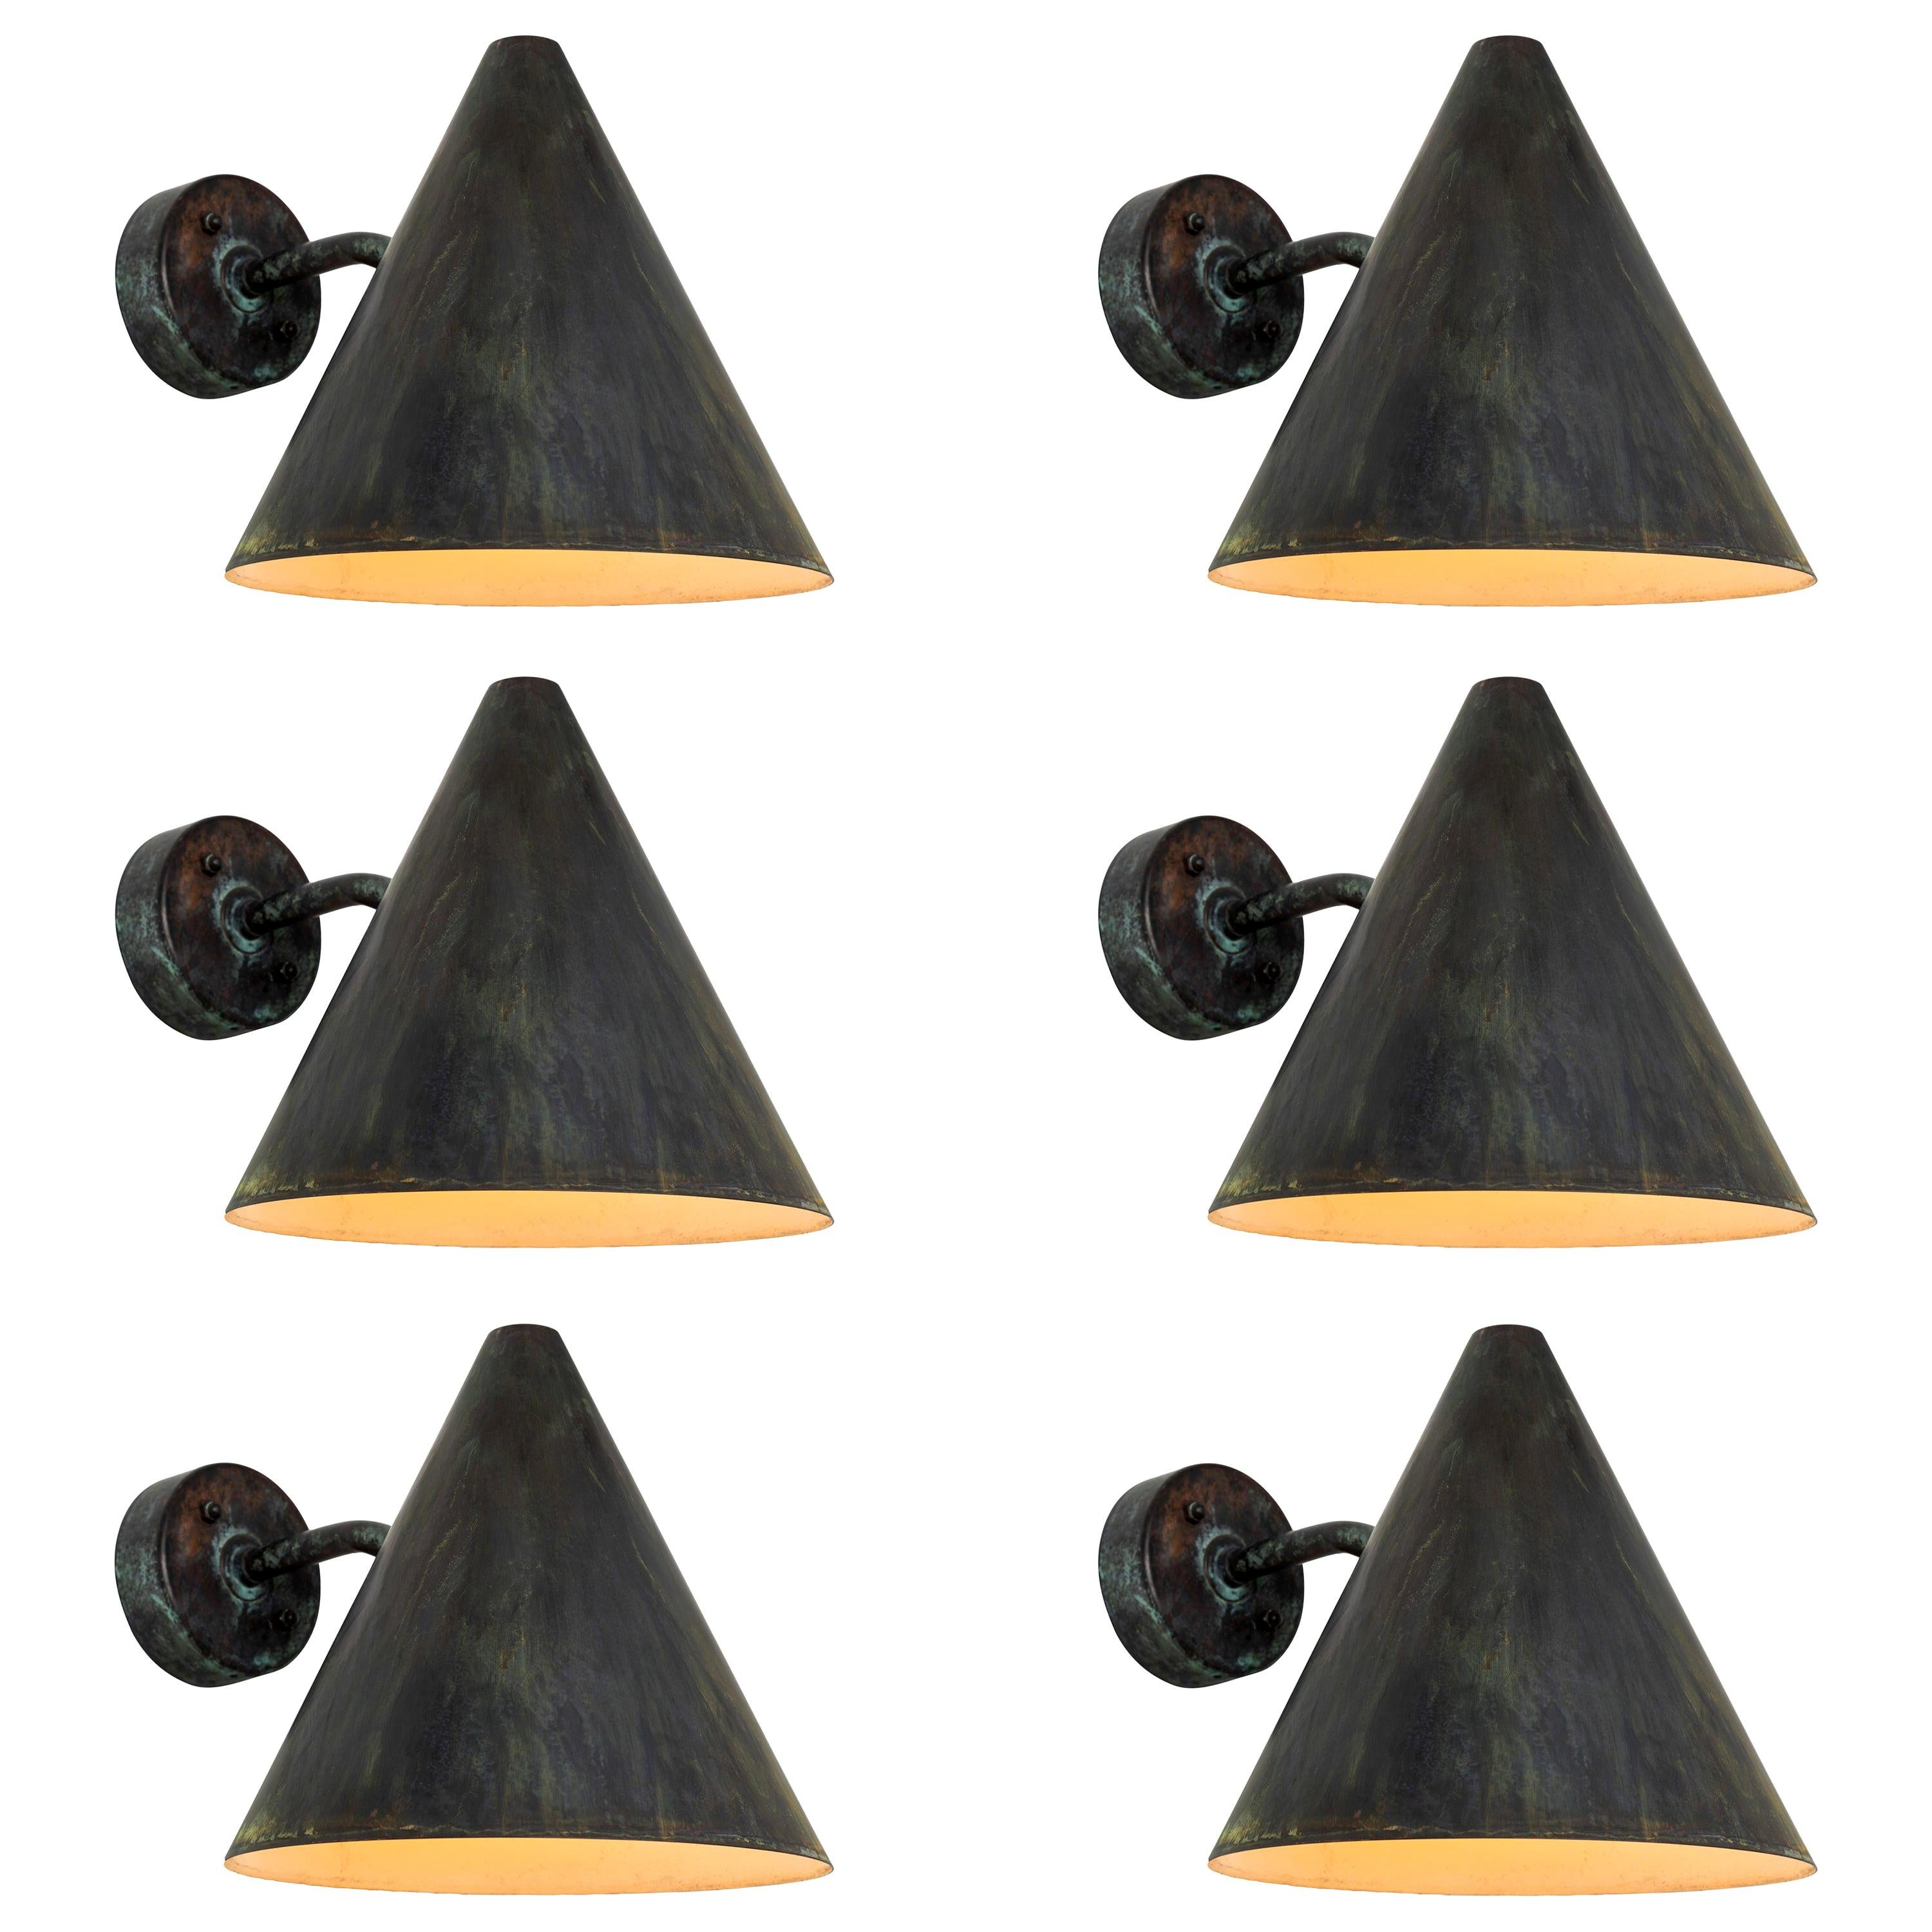 Hans-Agne Jakobsson 'Tratten' Darkly Patinated Outdoor Sconces